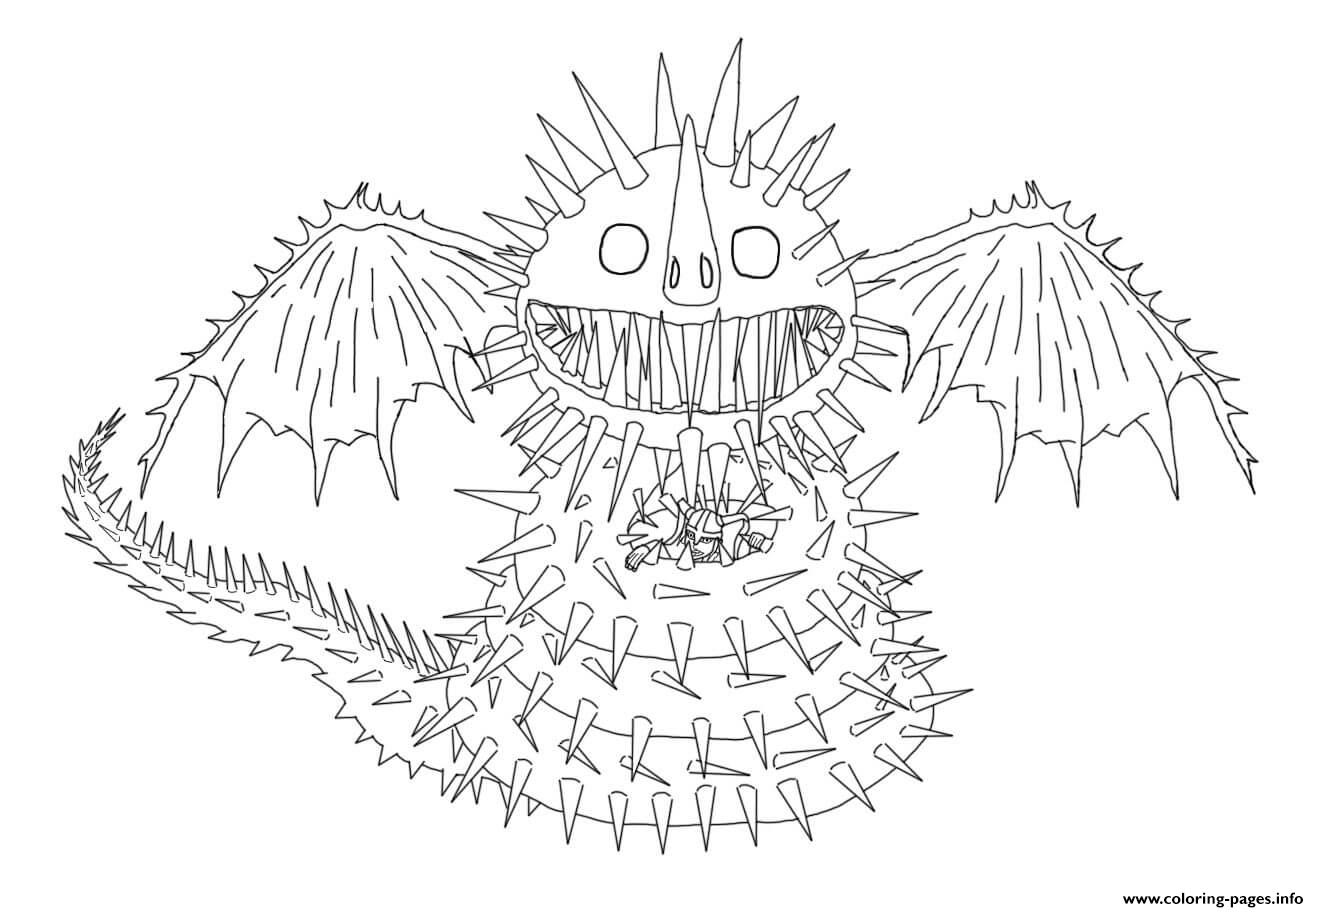 Whispering Death Dragon coloring pages